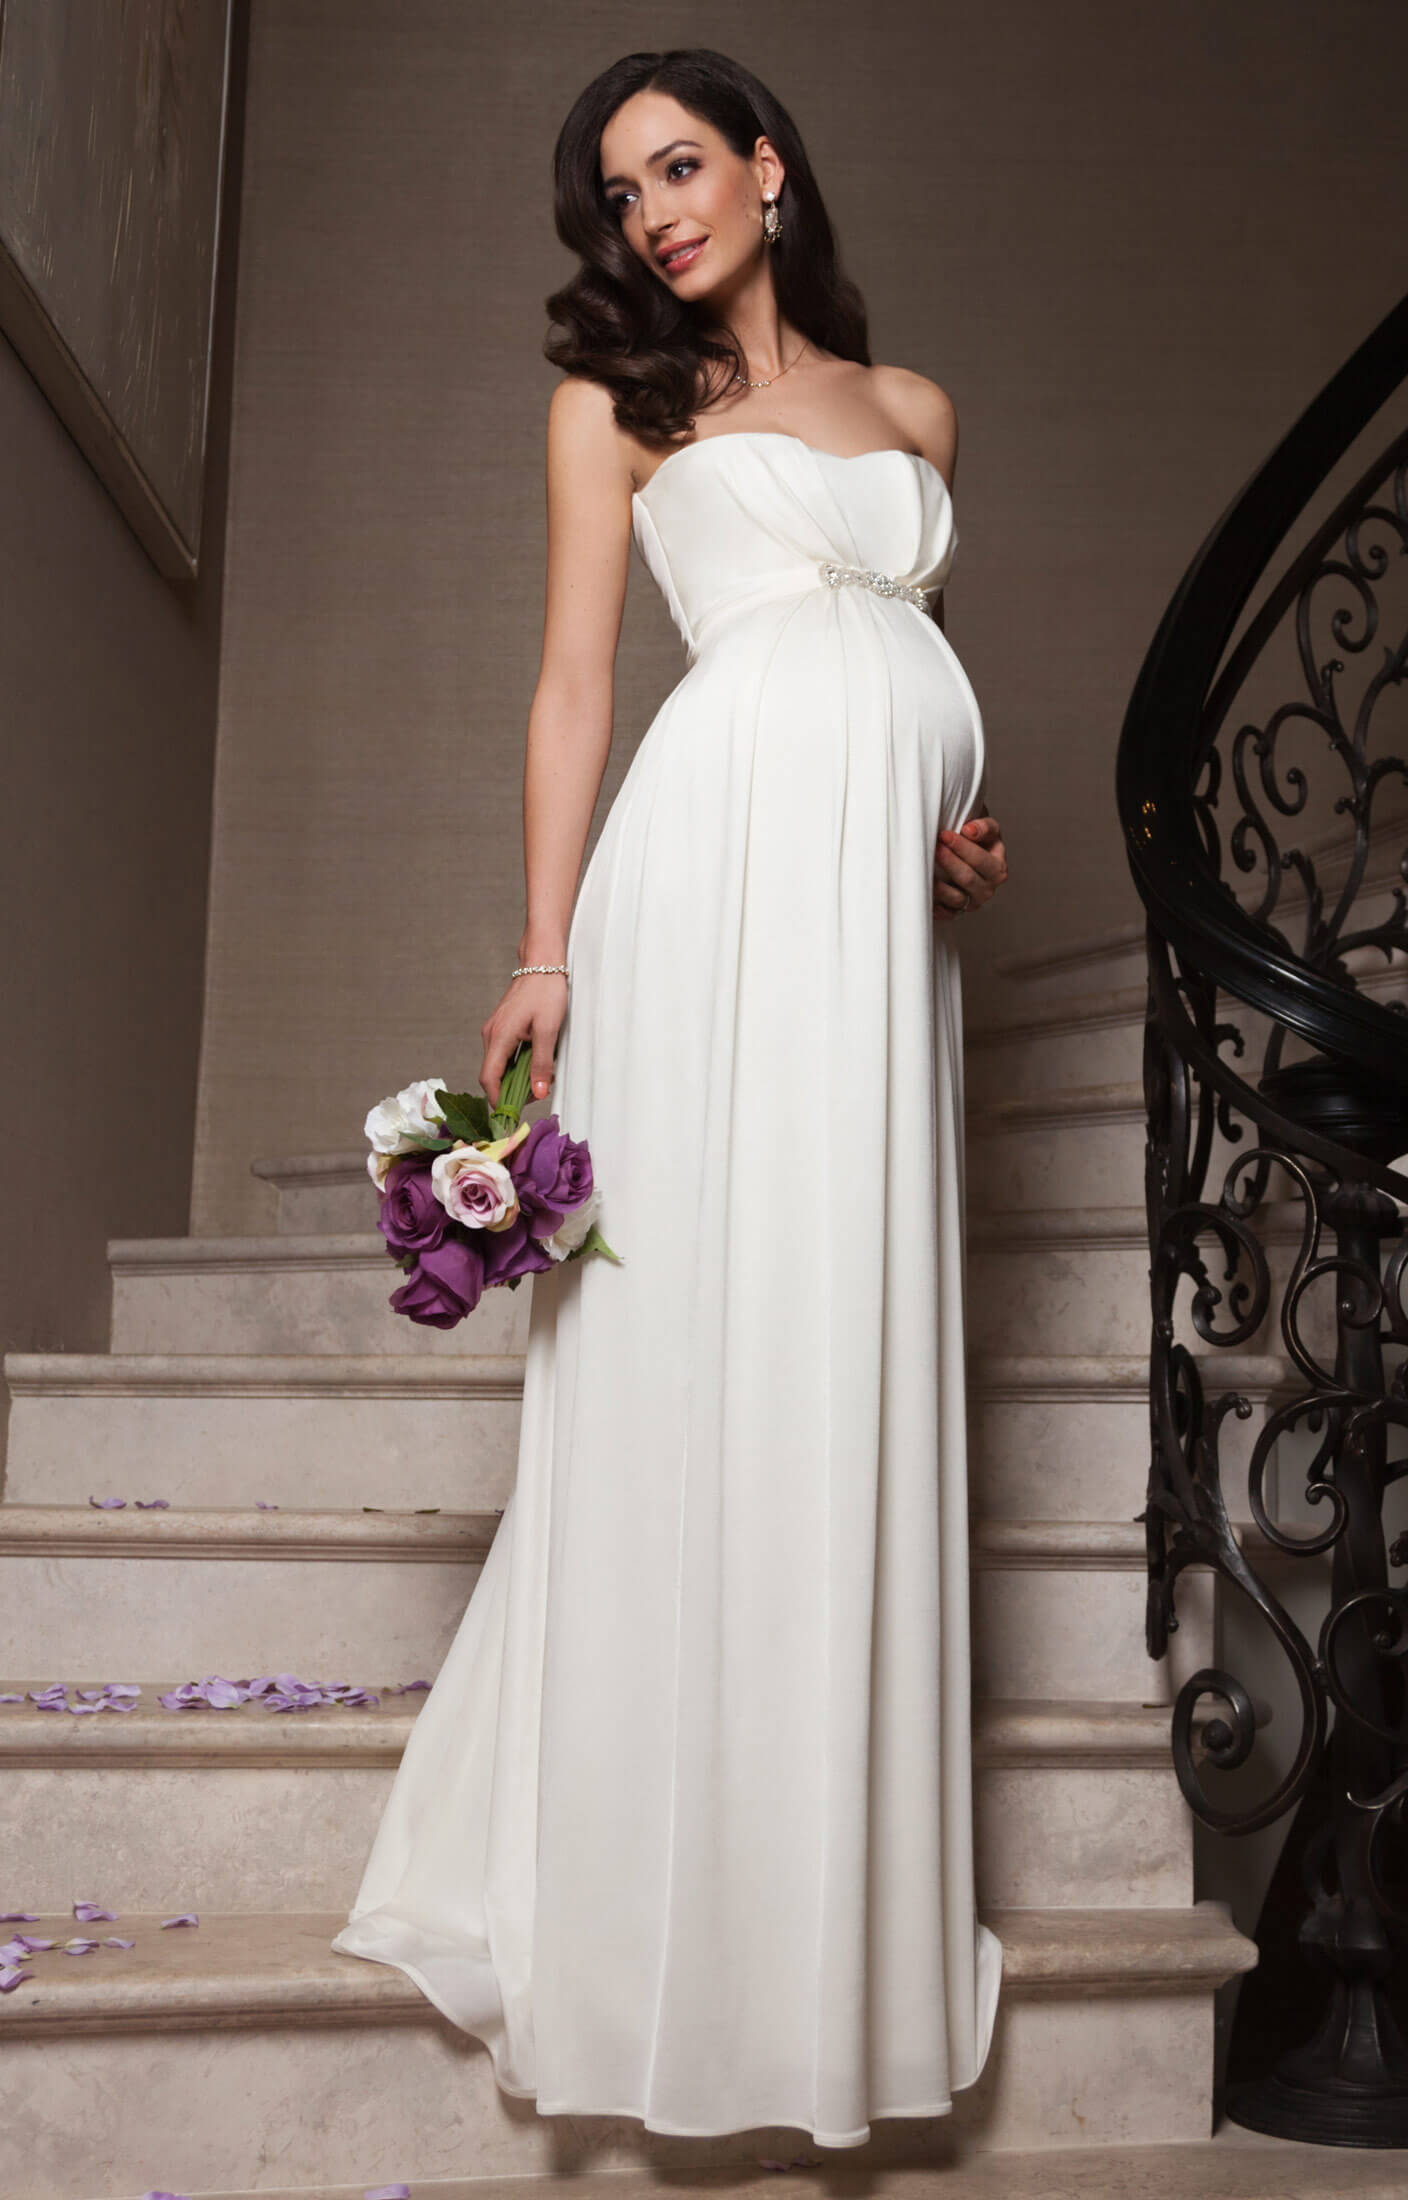 Annabella maternity wedding gown ivory maternity wedding annabella maternity wedding gown ivory by tiffany rose ombrellifo Gallery